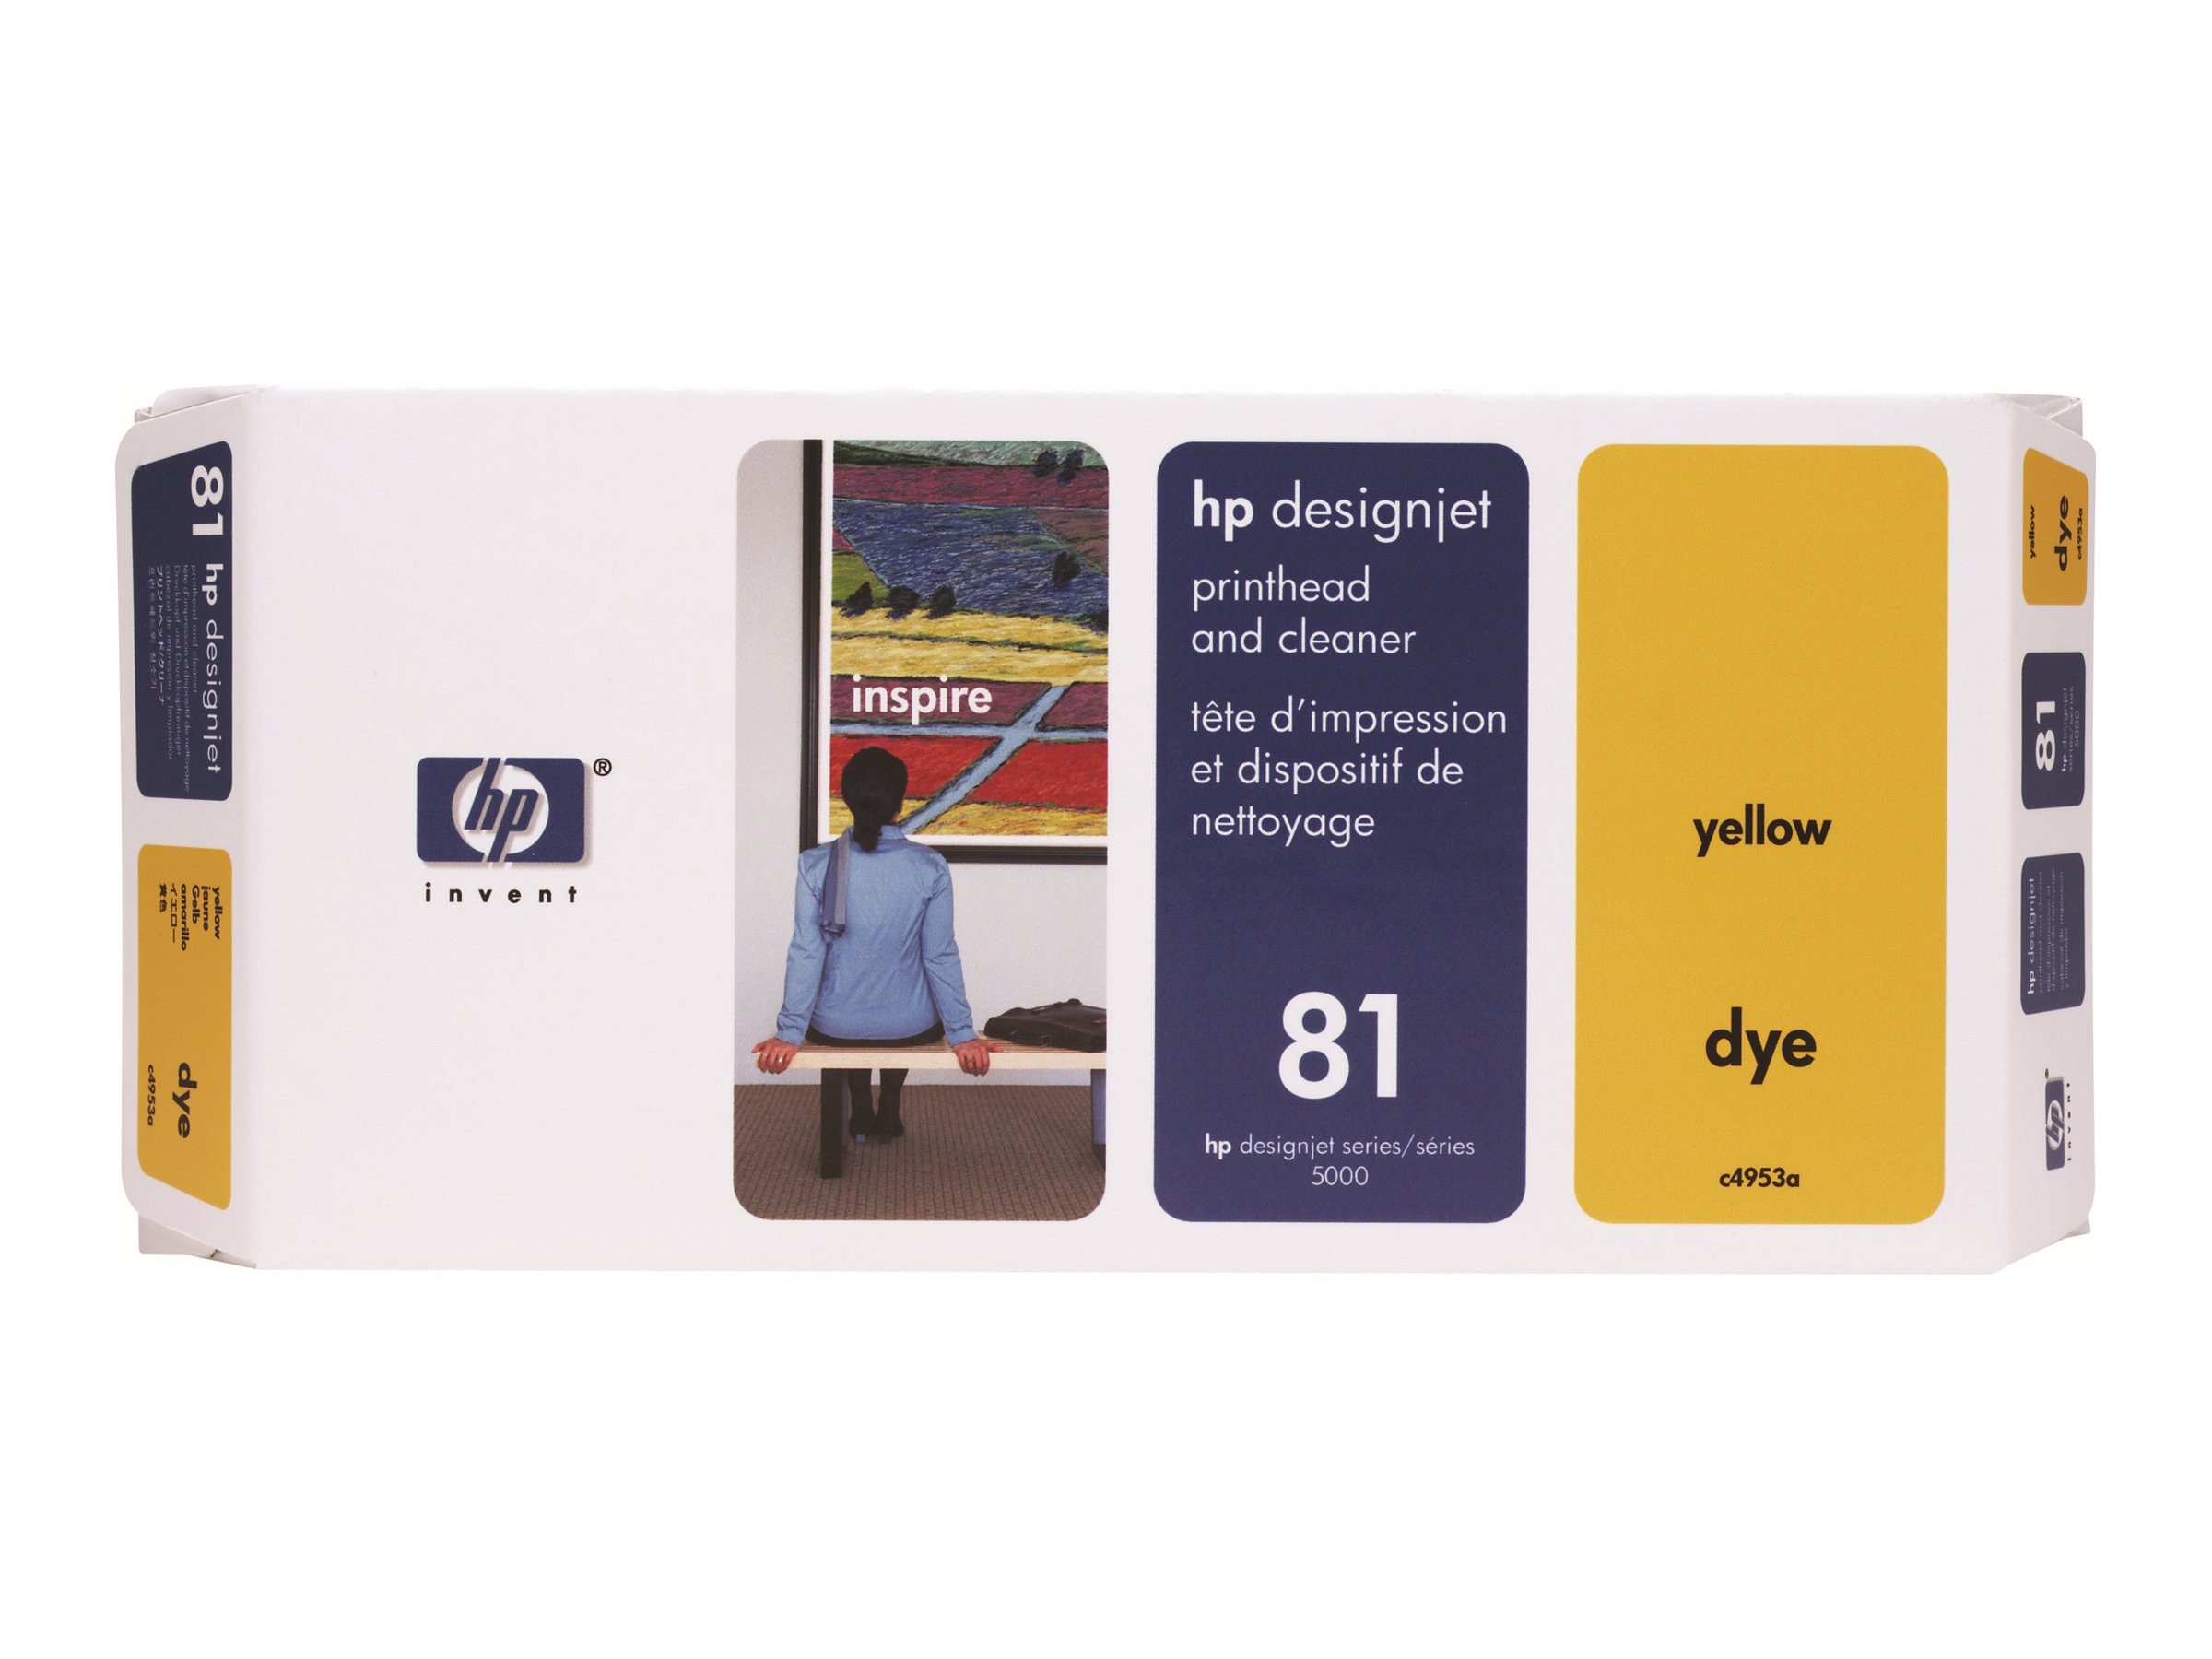 HP 81 Yellow Dye Printhead & Cleaner for HP Deskjet 5500, C4953A